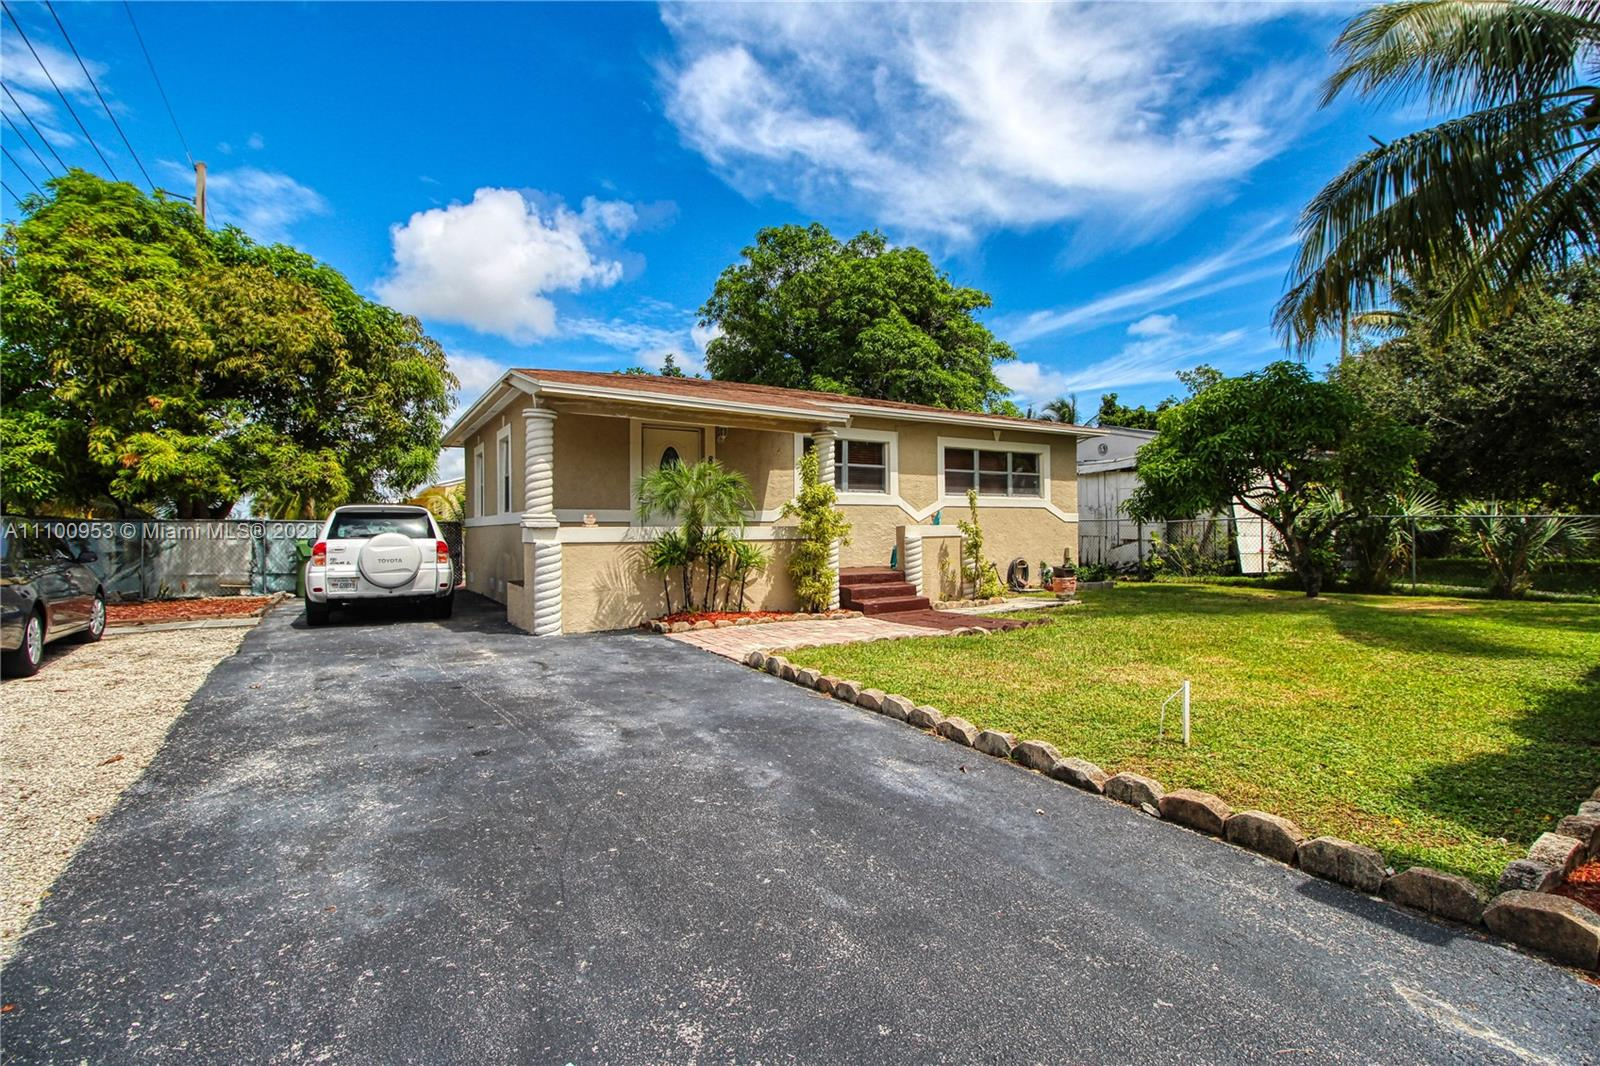 Progresso, 817 NW 17th St, Fort Lauderdale, Florida 33311